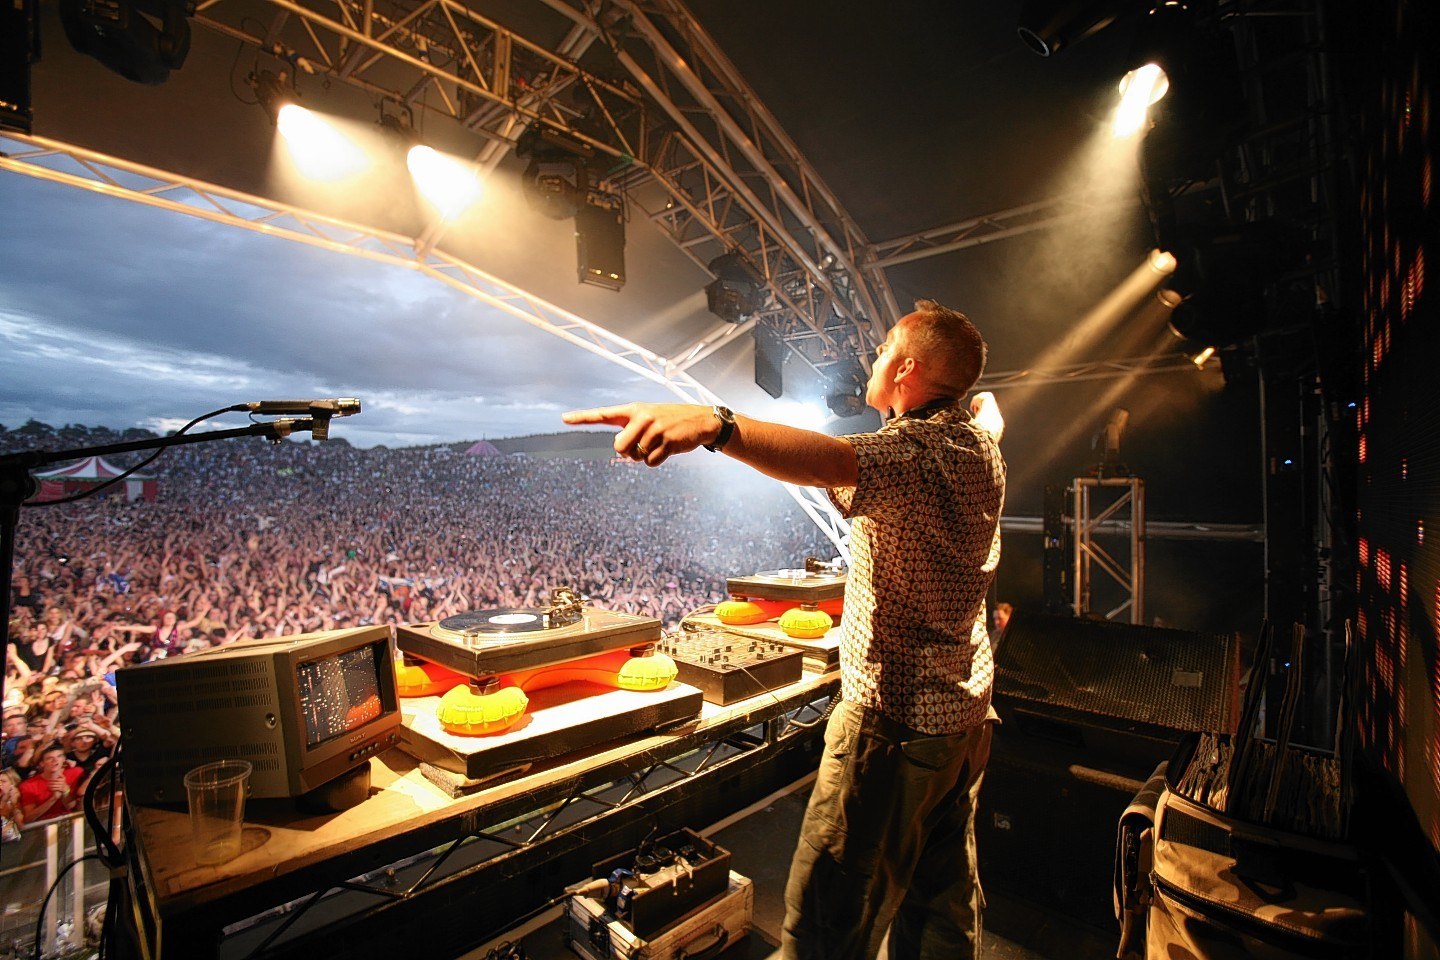 Fatboy Slim plays to the crowd in 2006